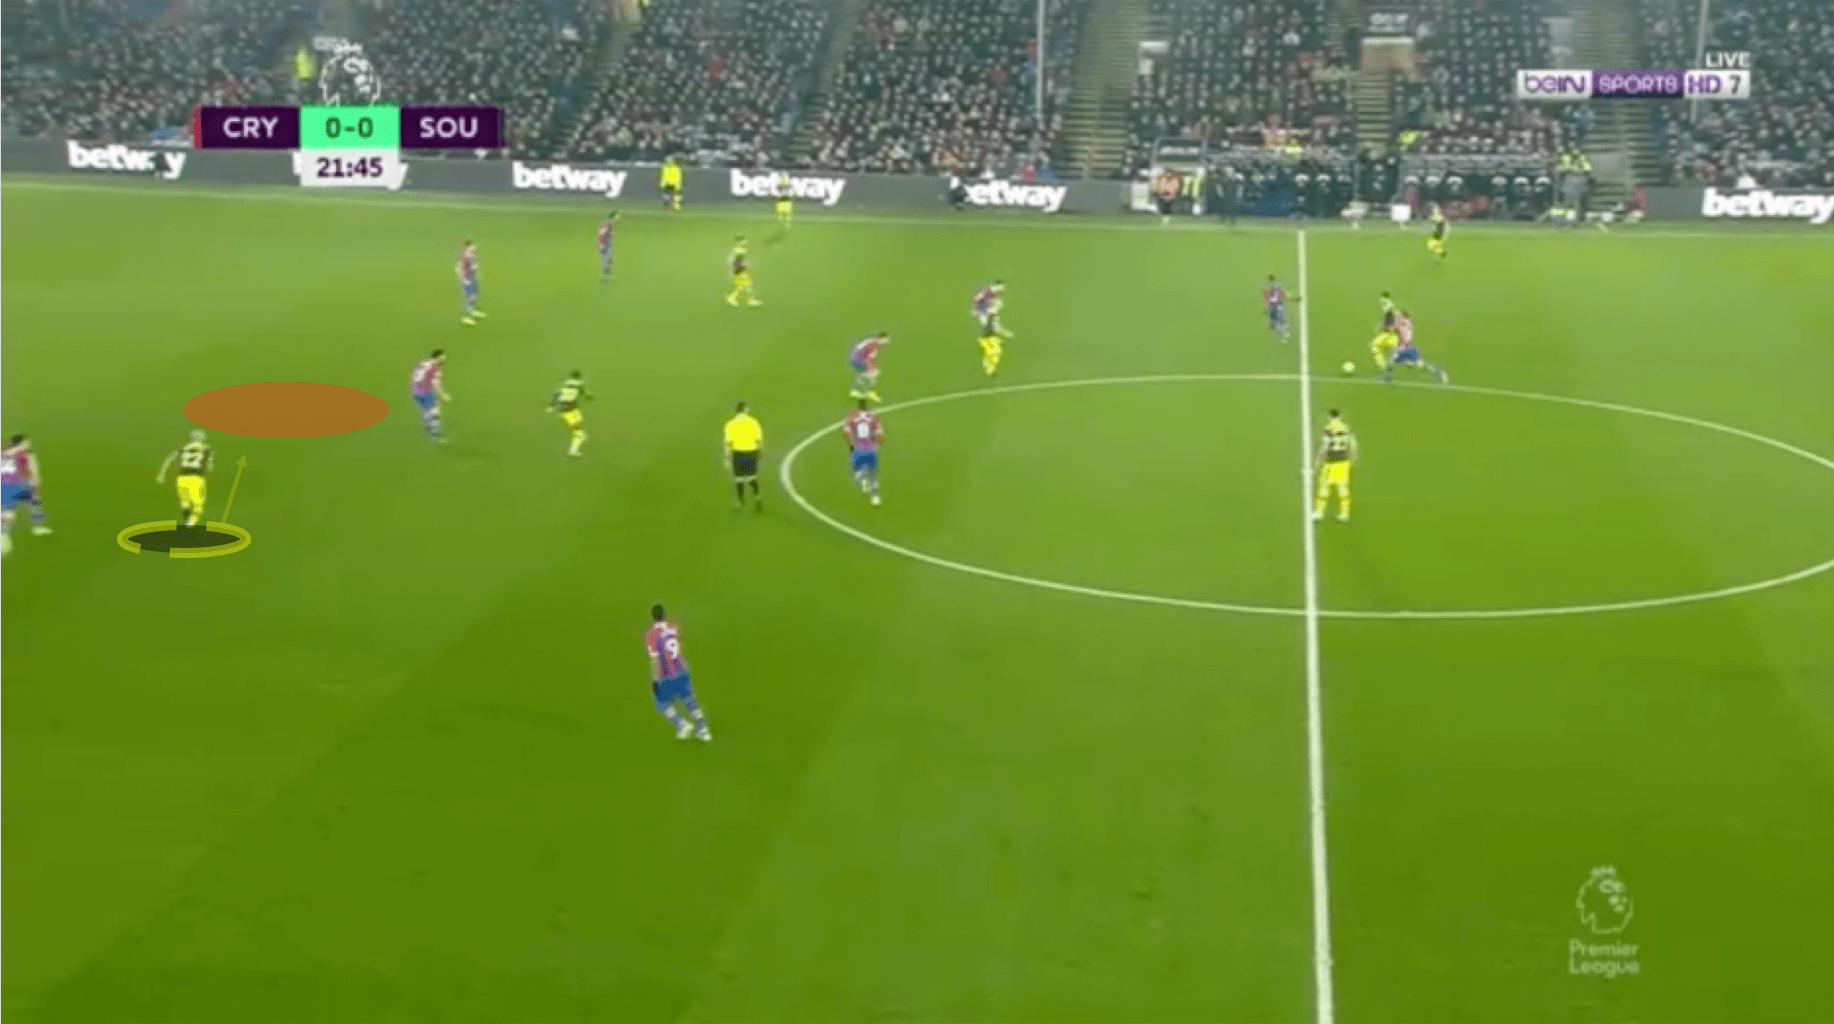 Premier League 2019/20 : Crystal Palace vs Southampton FC - tactical analysis tactics